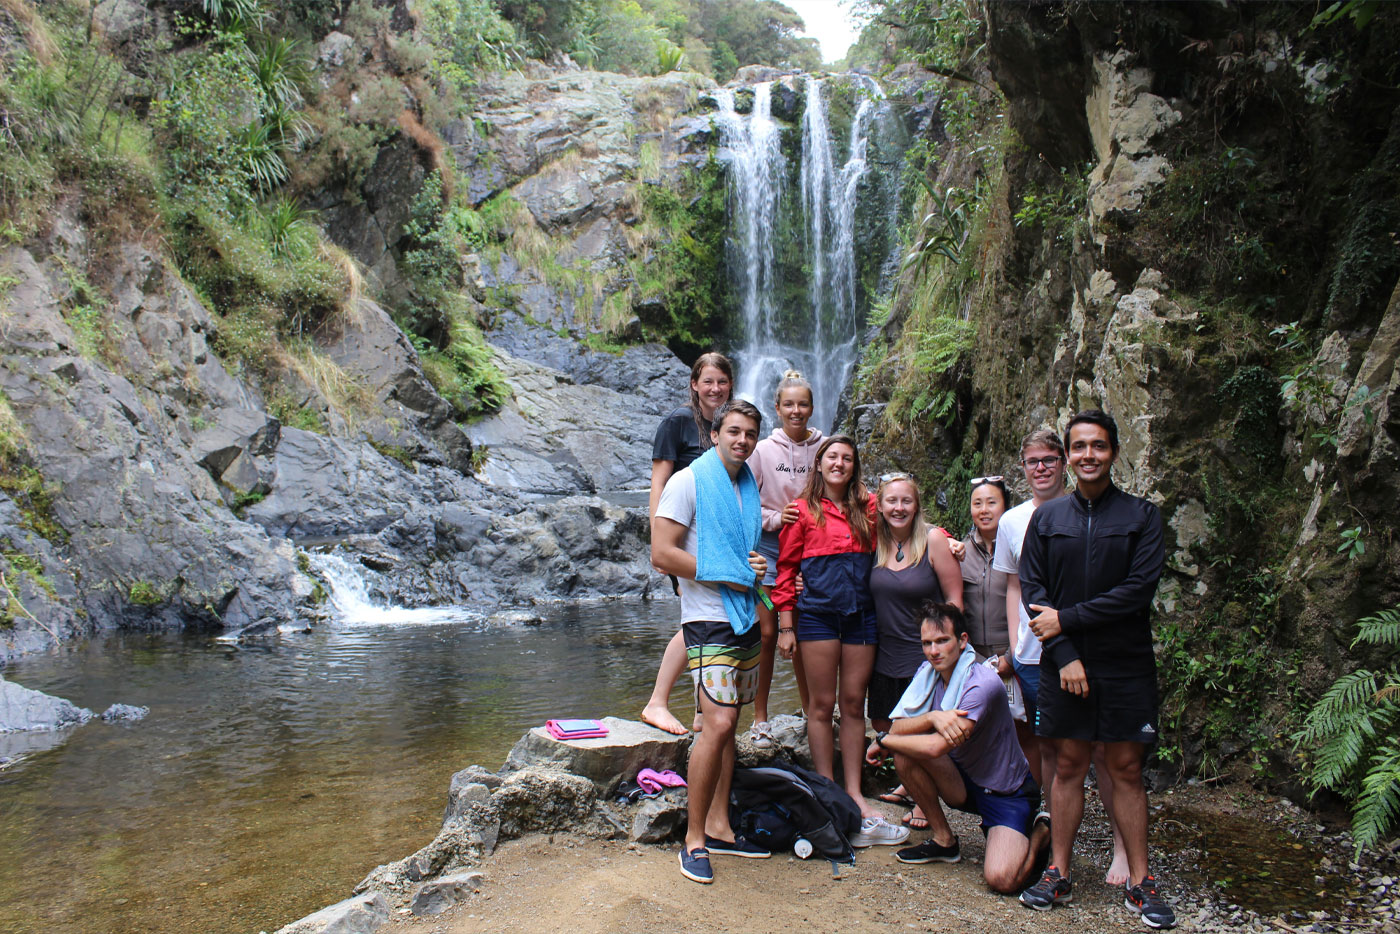 Northern-New-Zealand-Trip-Gap-Year-Northern-Adventure-Tour-New-Zeland-Adventure-Tours-NZ-Tours-&-Travel-Kiwi-Small-Group-Tours-Gap-Year-Tour-in-New-Zeland-Grabatour-Travel